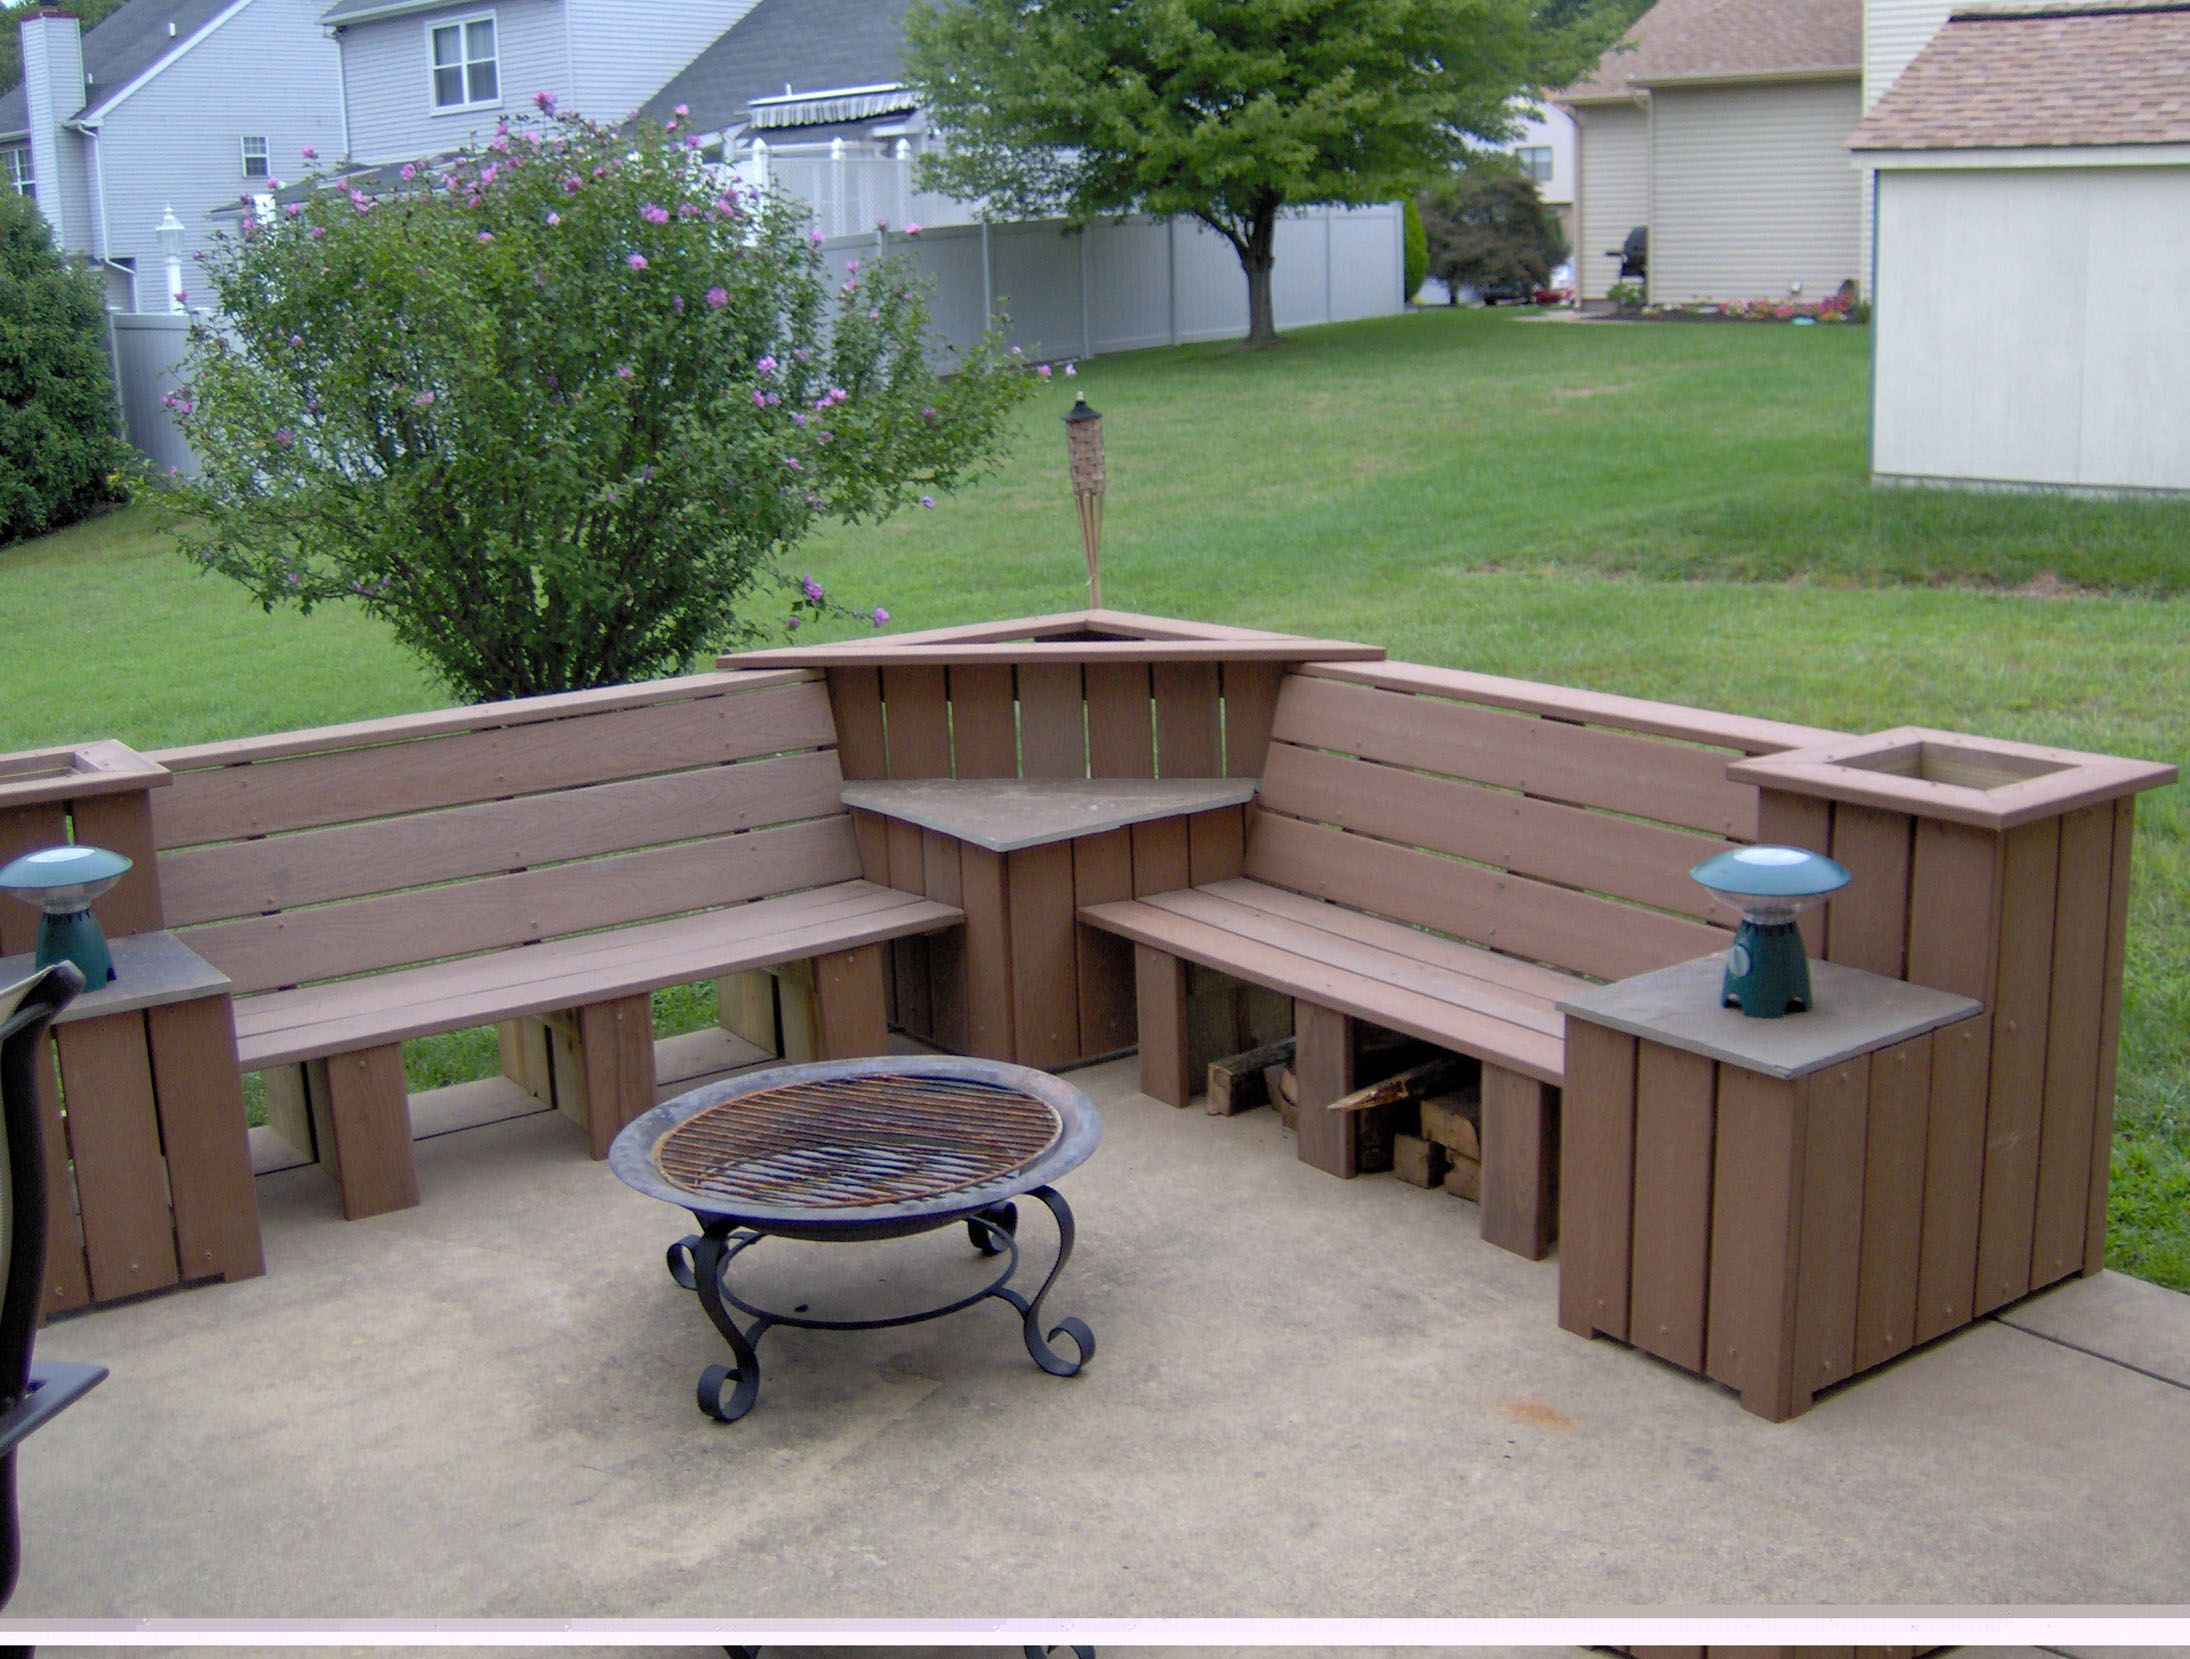 Decking ideas Benches, Decks and Diy pergola